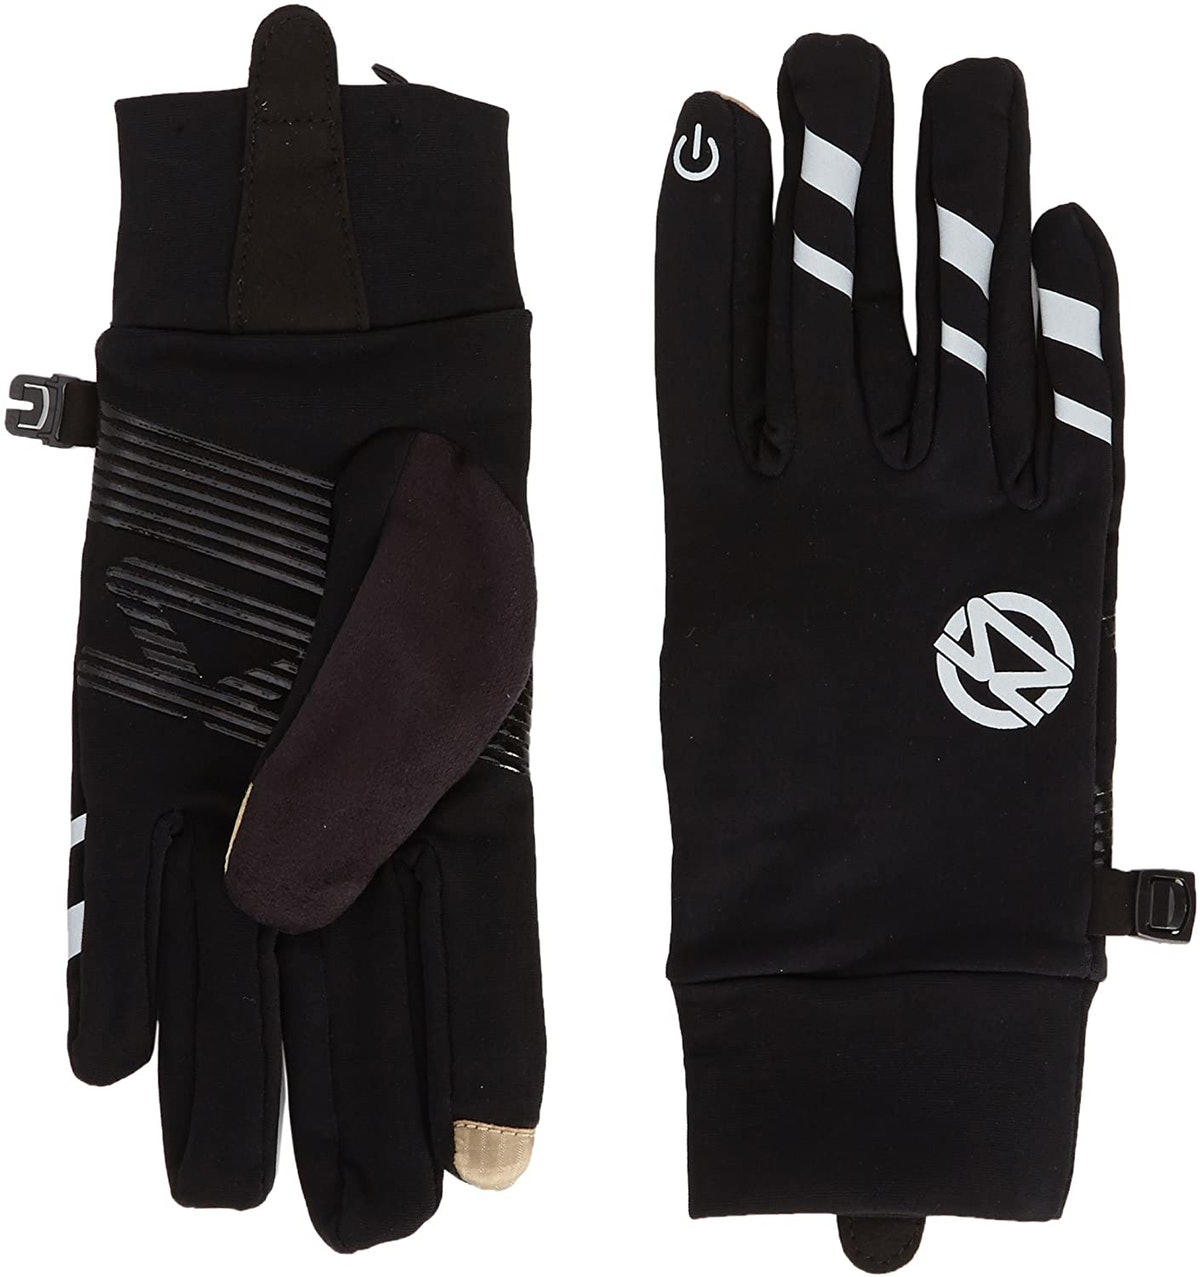 Smart Running Gloves With Touch Screen Feature